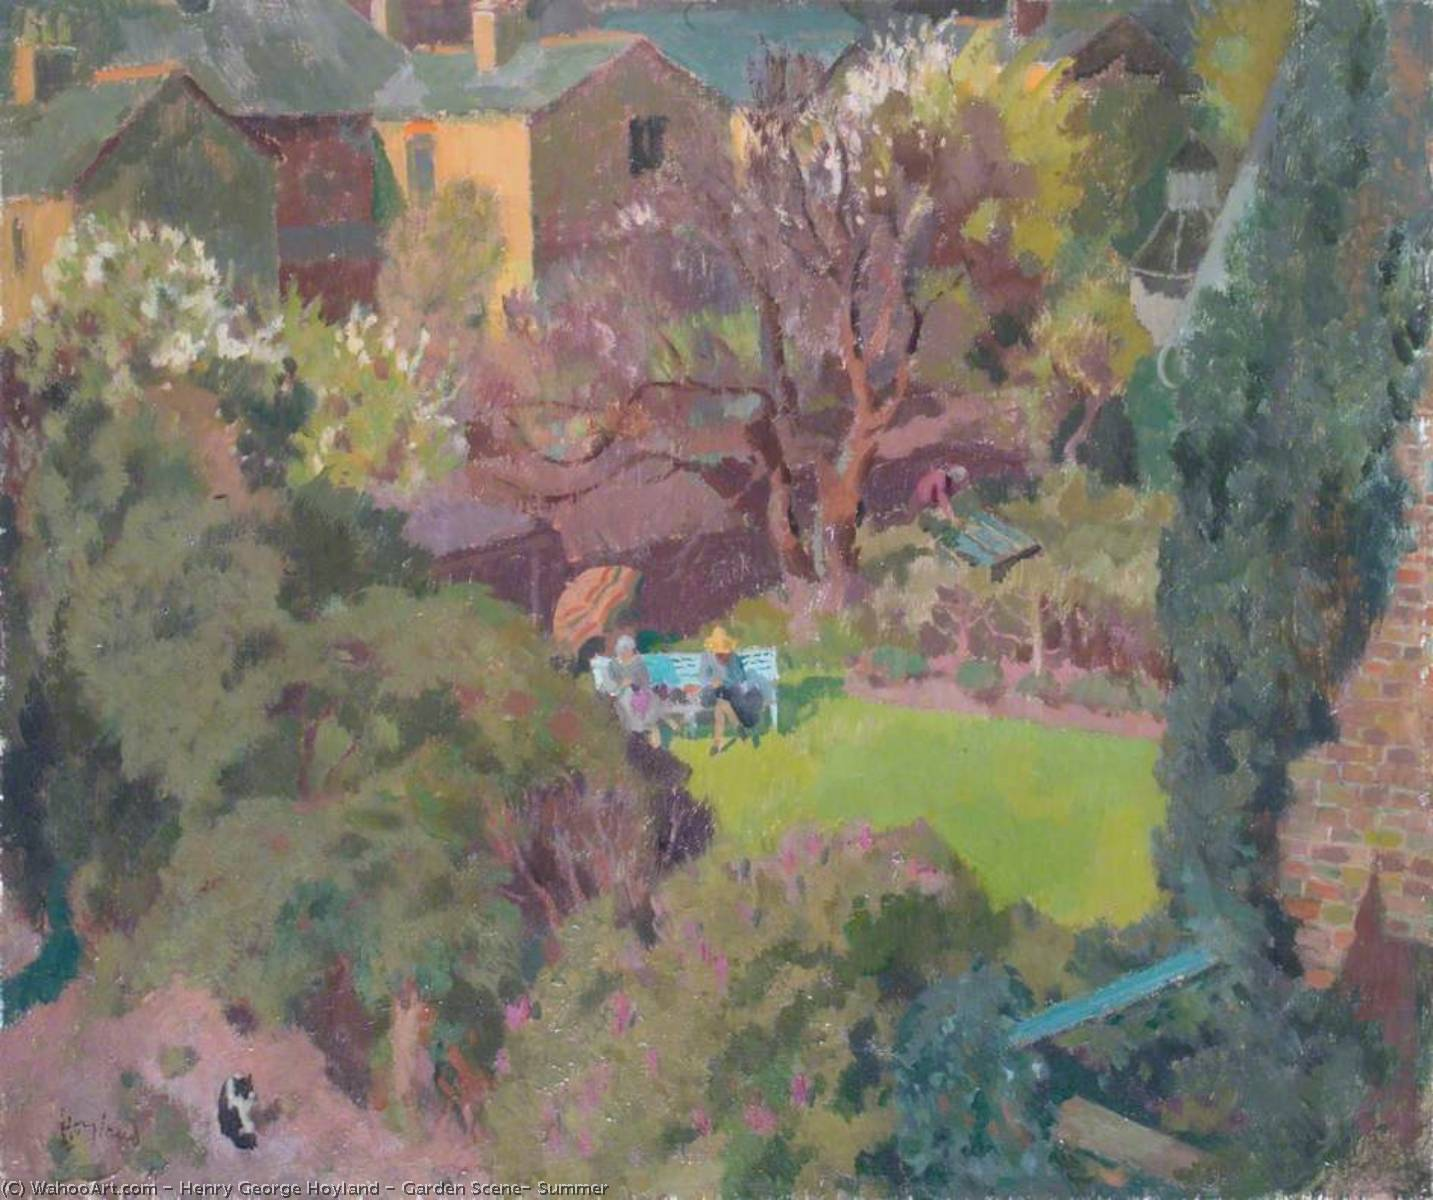 Garden Scene, Summer, 1930 by Henry George Hoyland | Oil Painting | WahooArt.com